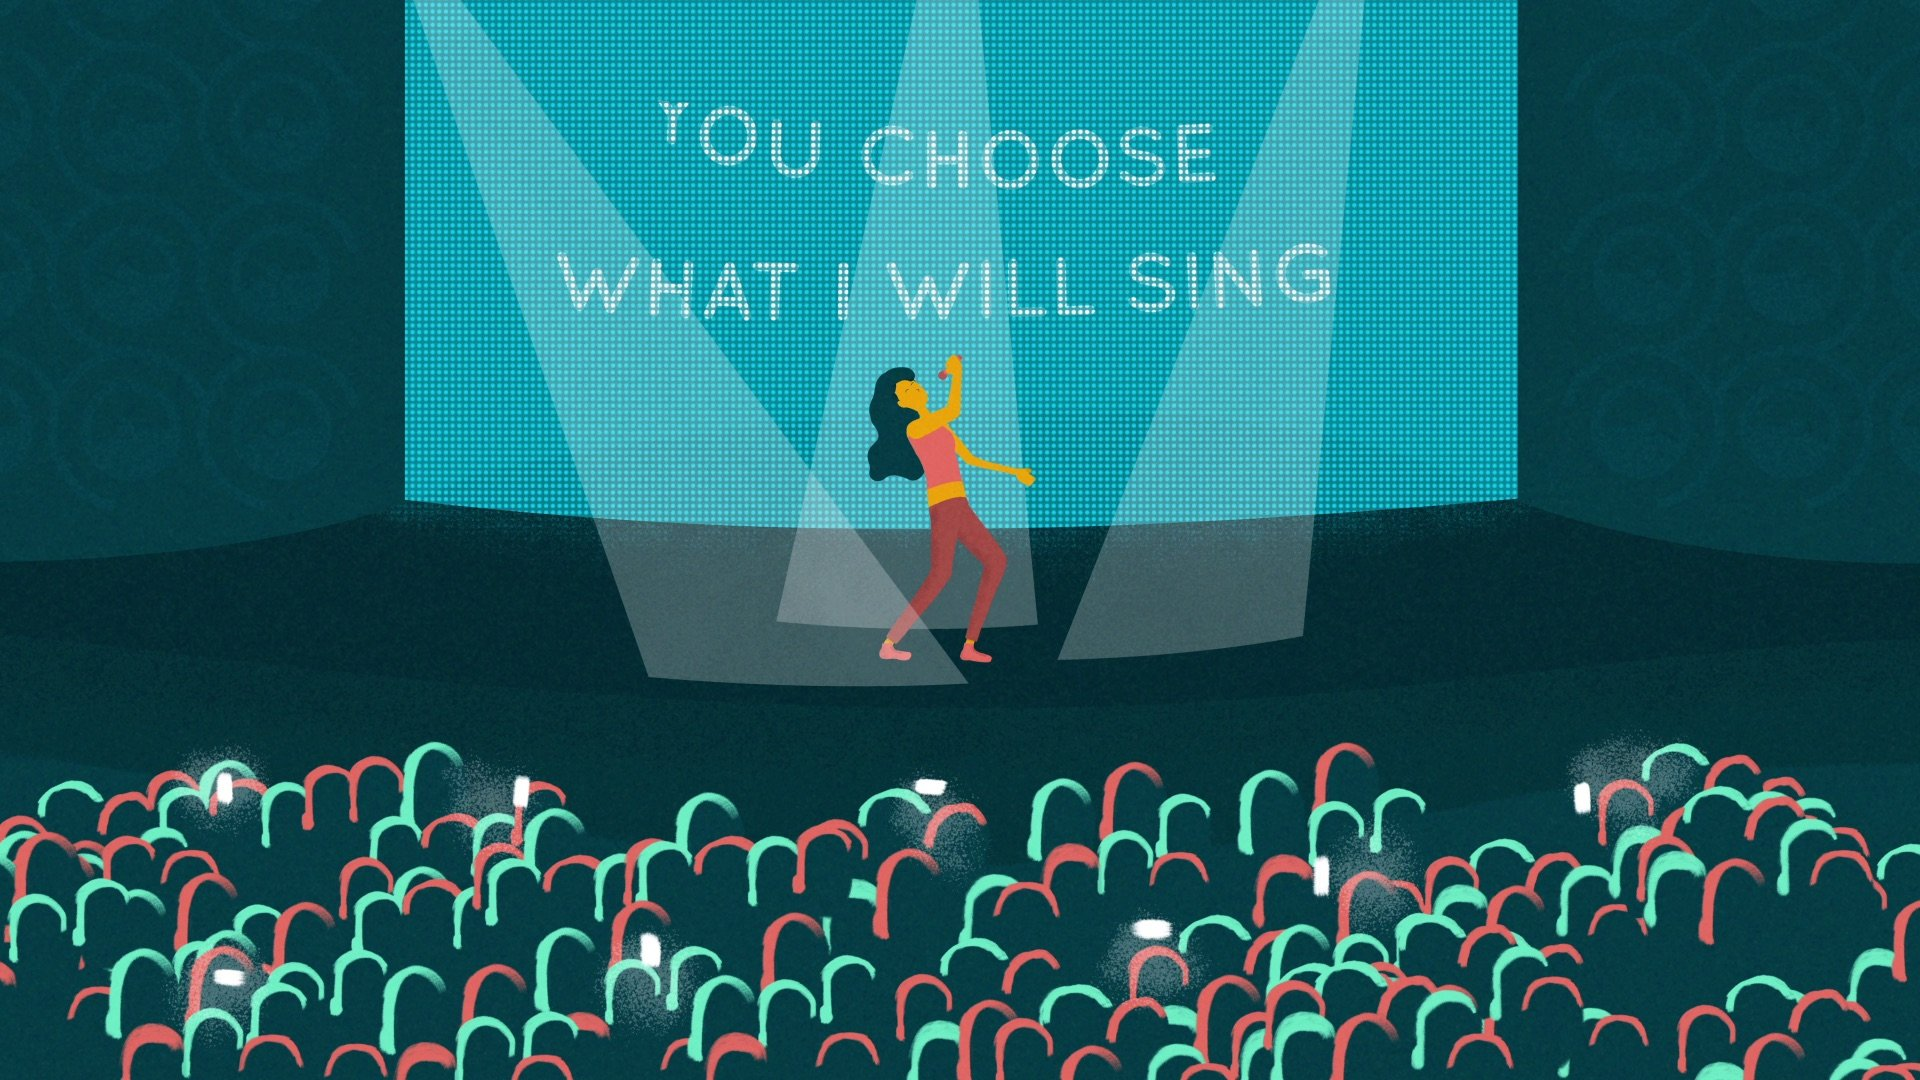 illustration for an explainer video animation for the Incidee app. It shows a singer in the stage